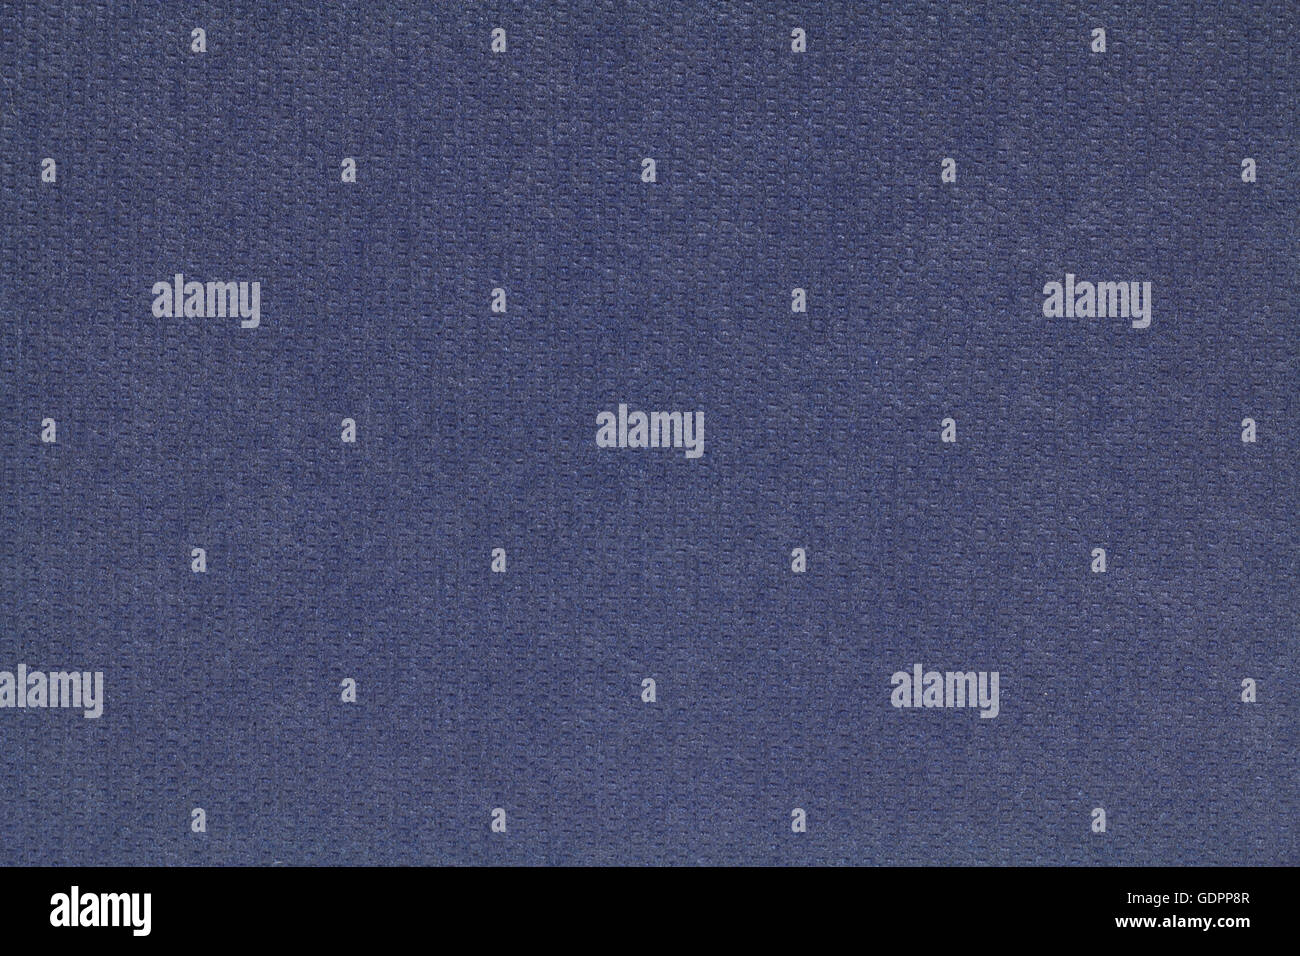 navy blue fabric paper texture background - Stock Image